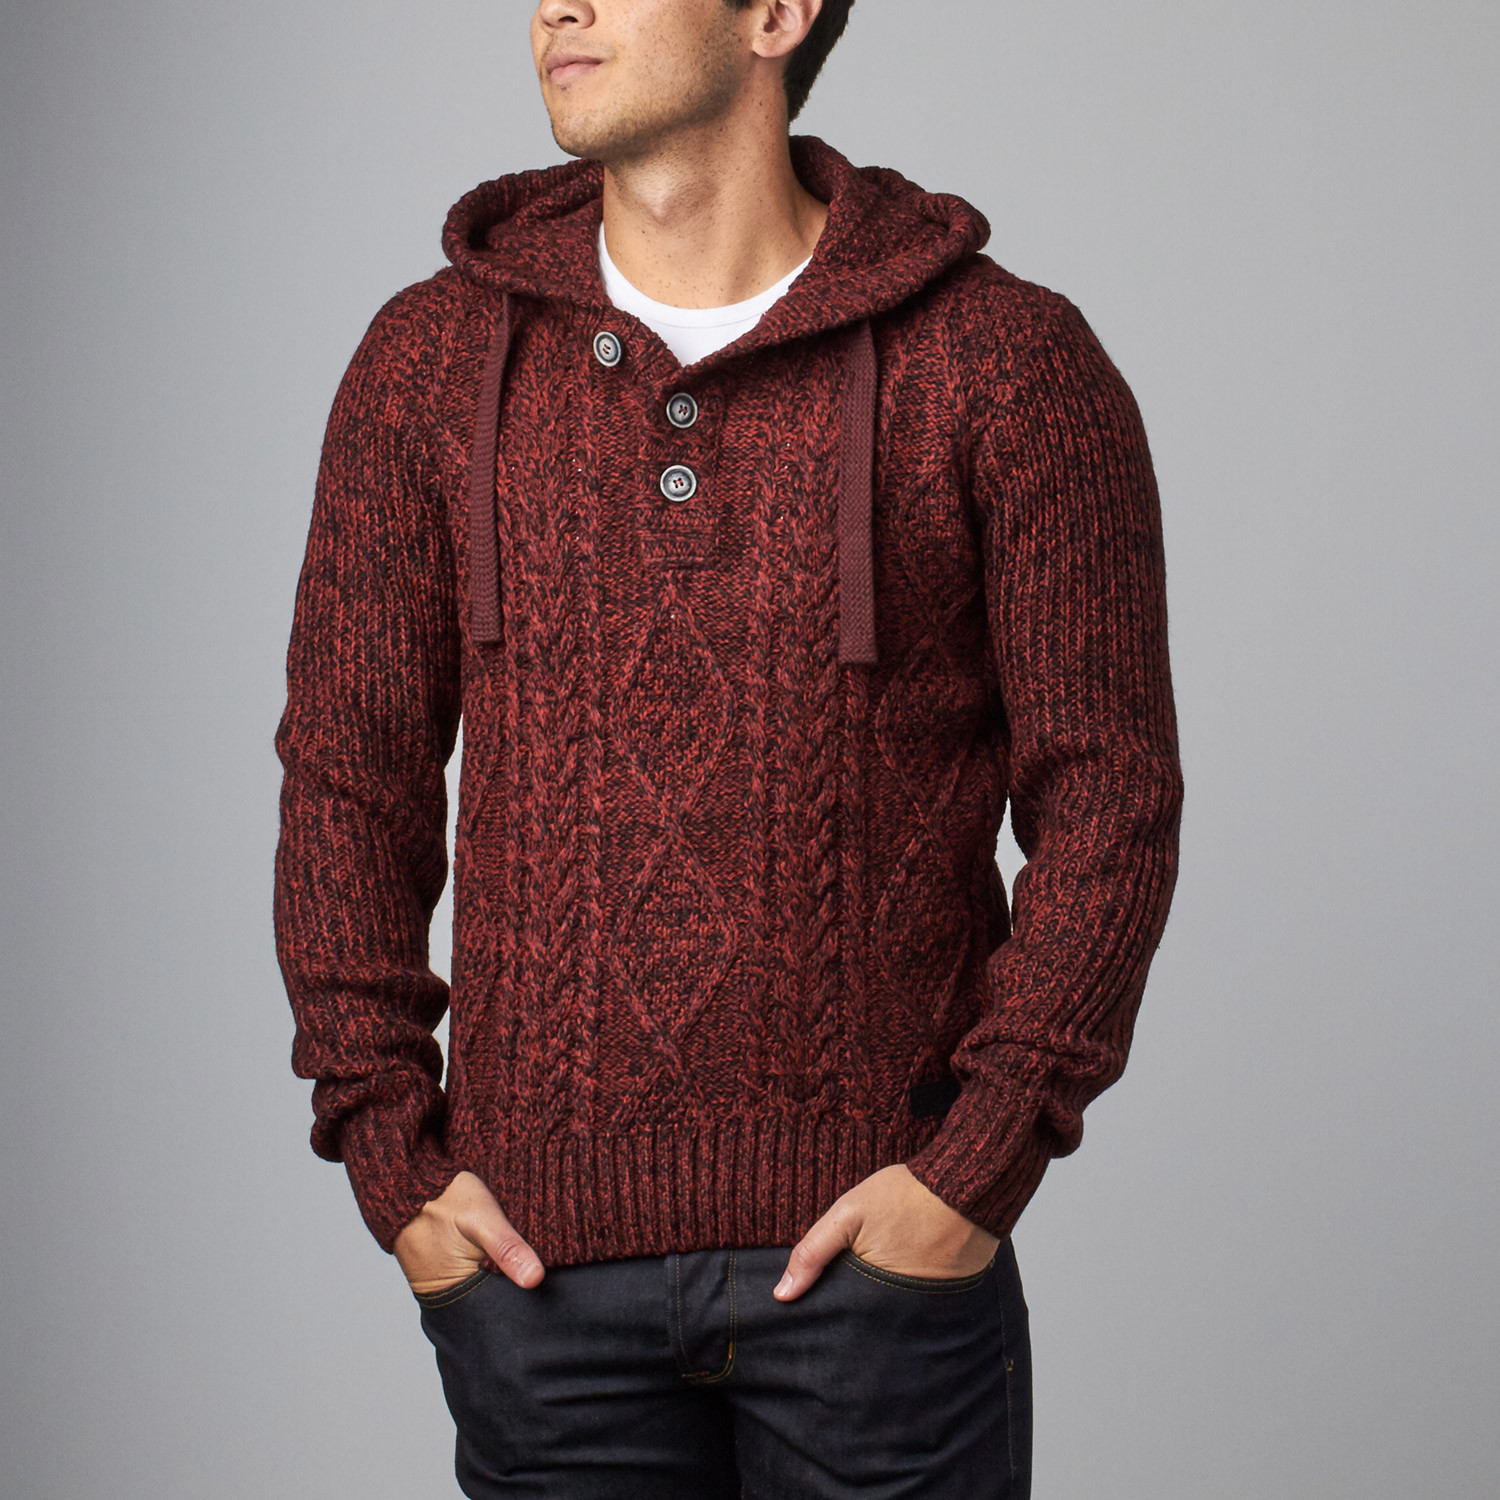 Cable Knit Sweater Hoodie Burgundy S Projek Raw Touch Of Modern